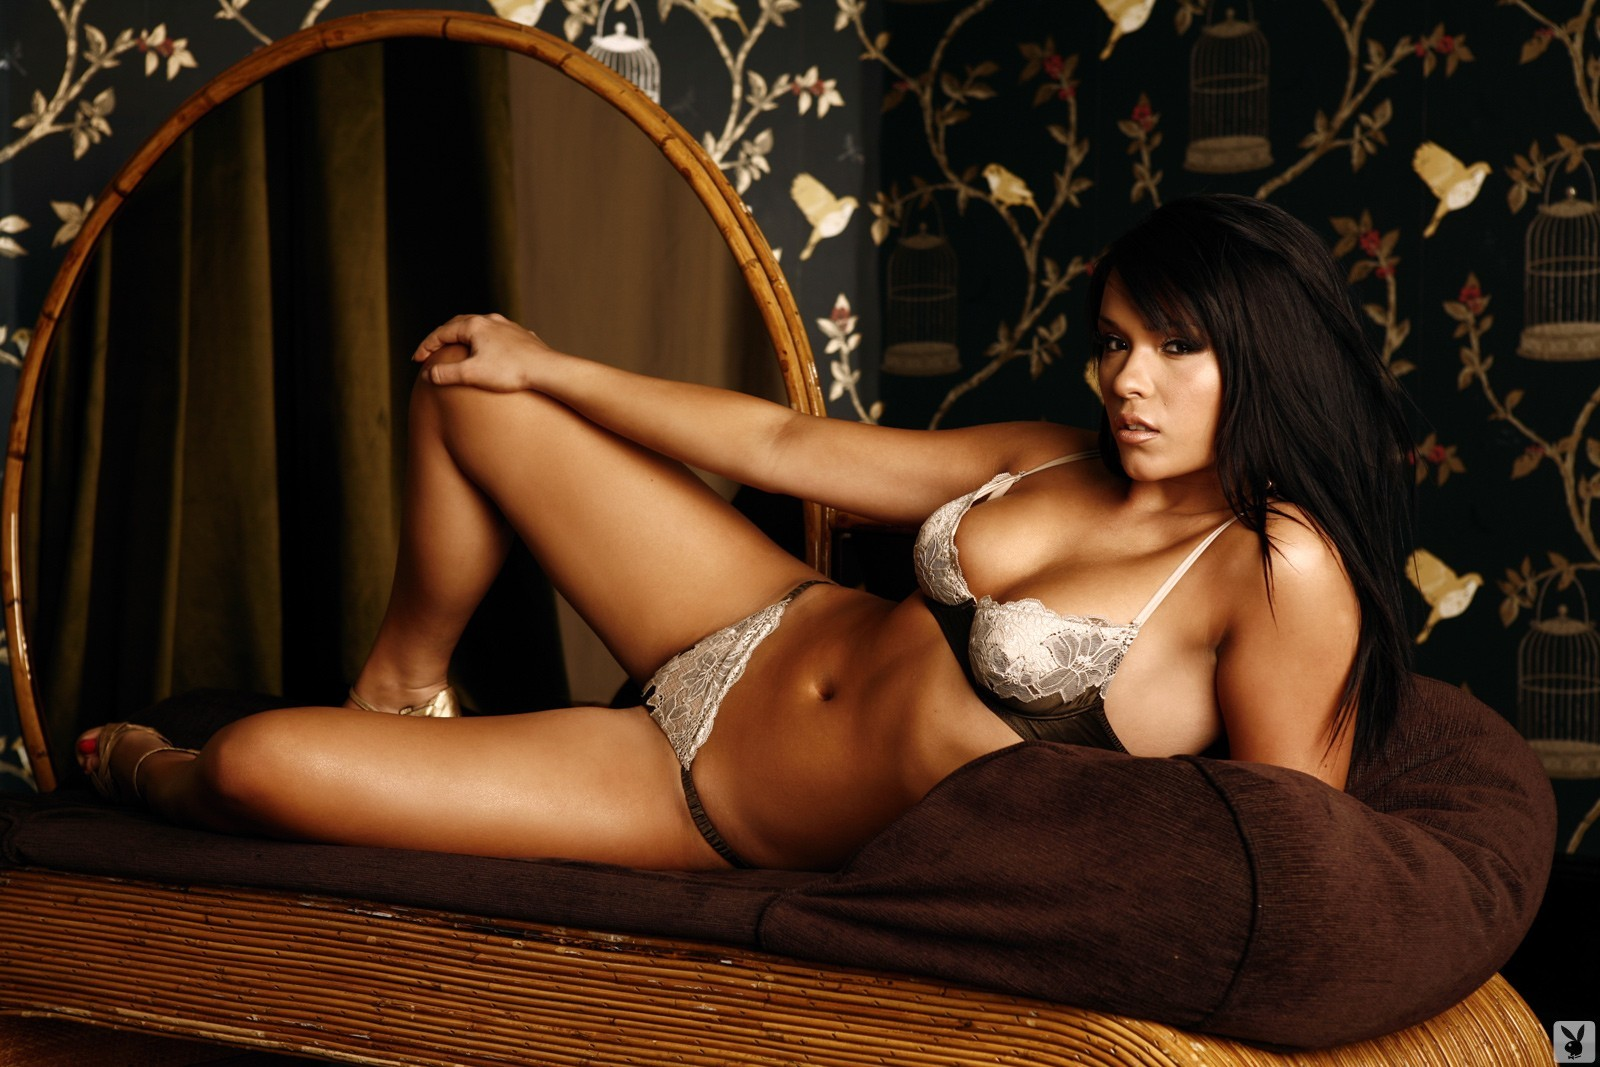 lingerie brunettes woman Playboy HD Wallpaper